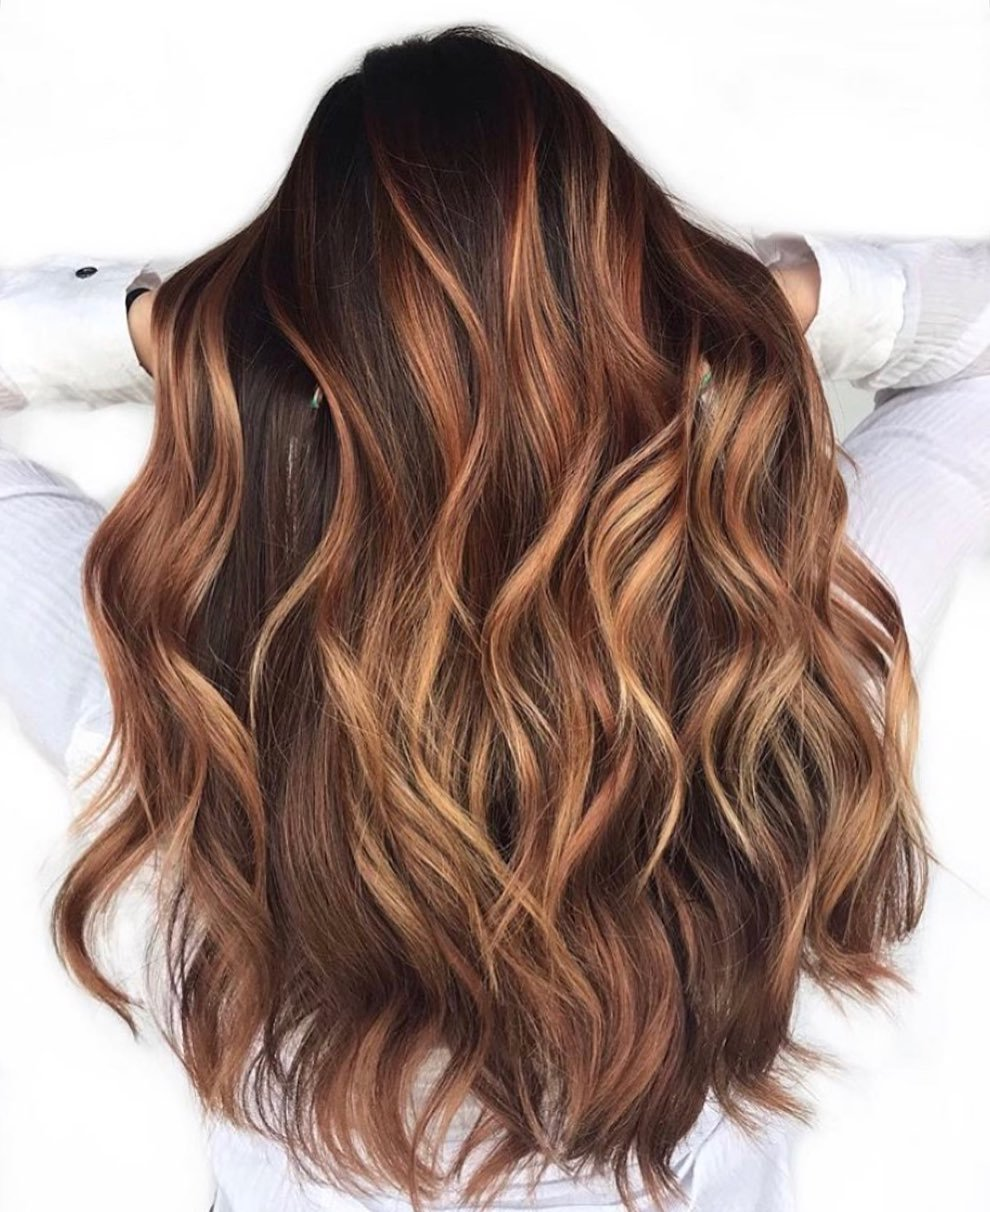 Caramel Hair Color Idea for Brown Hair